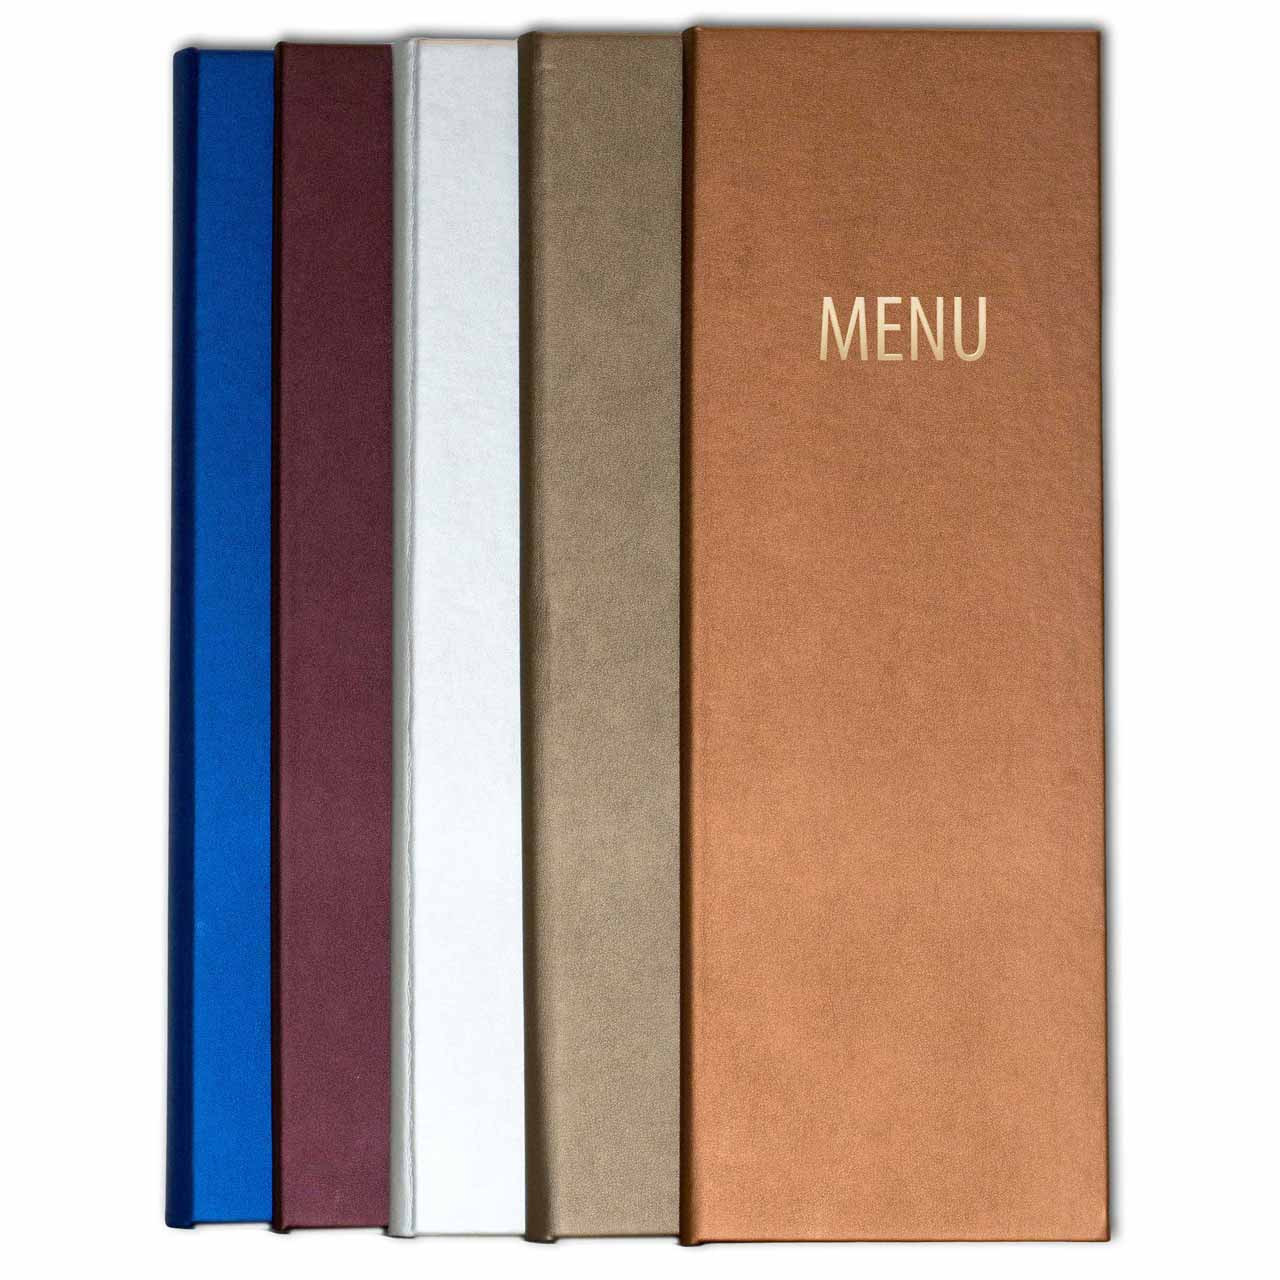 Radiant Faux Leather Menu Covers